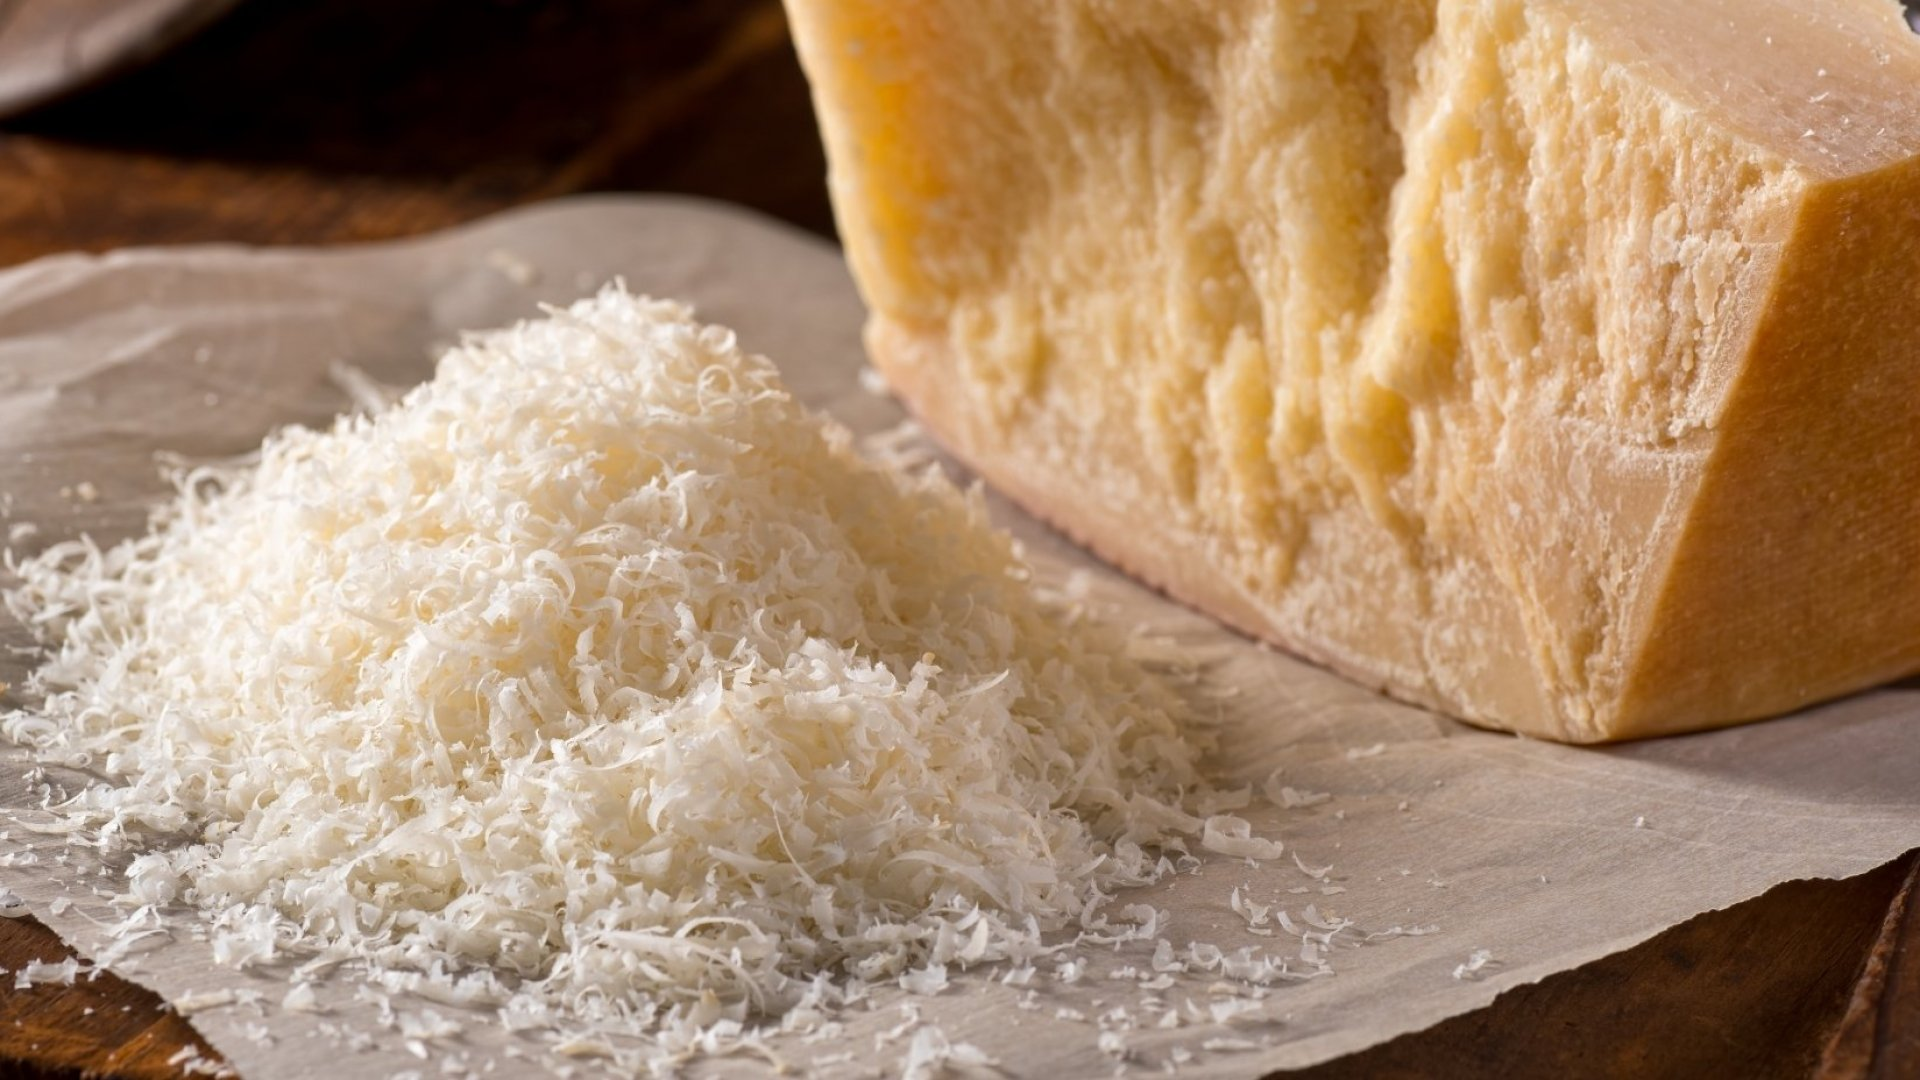 Horrifying Cheese Scam Ends With Executive Probation and Fines